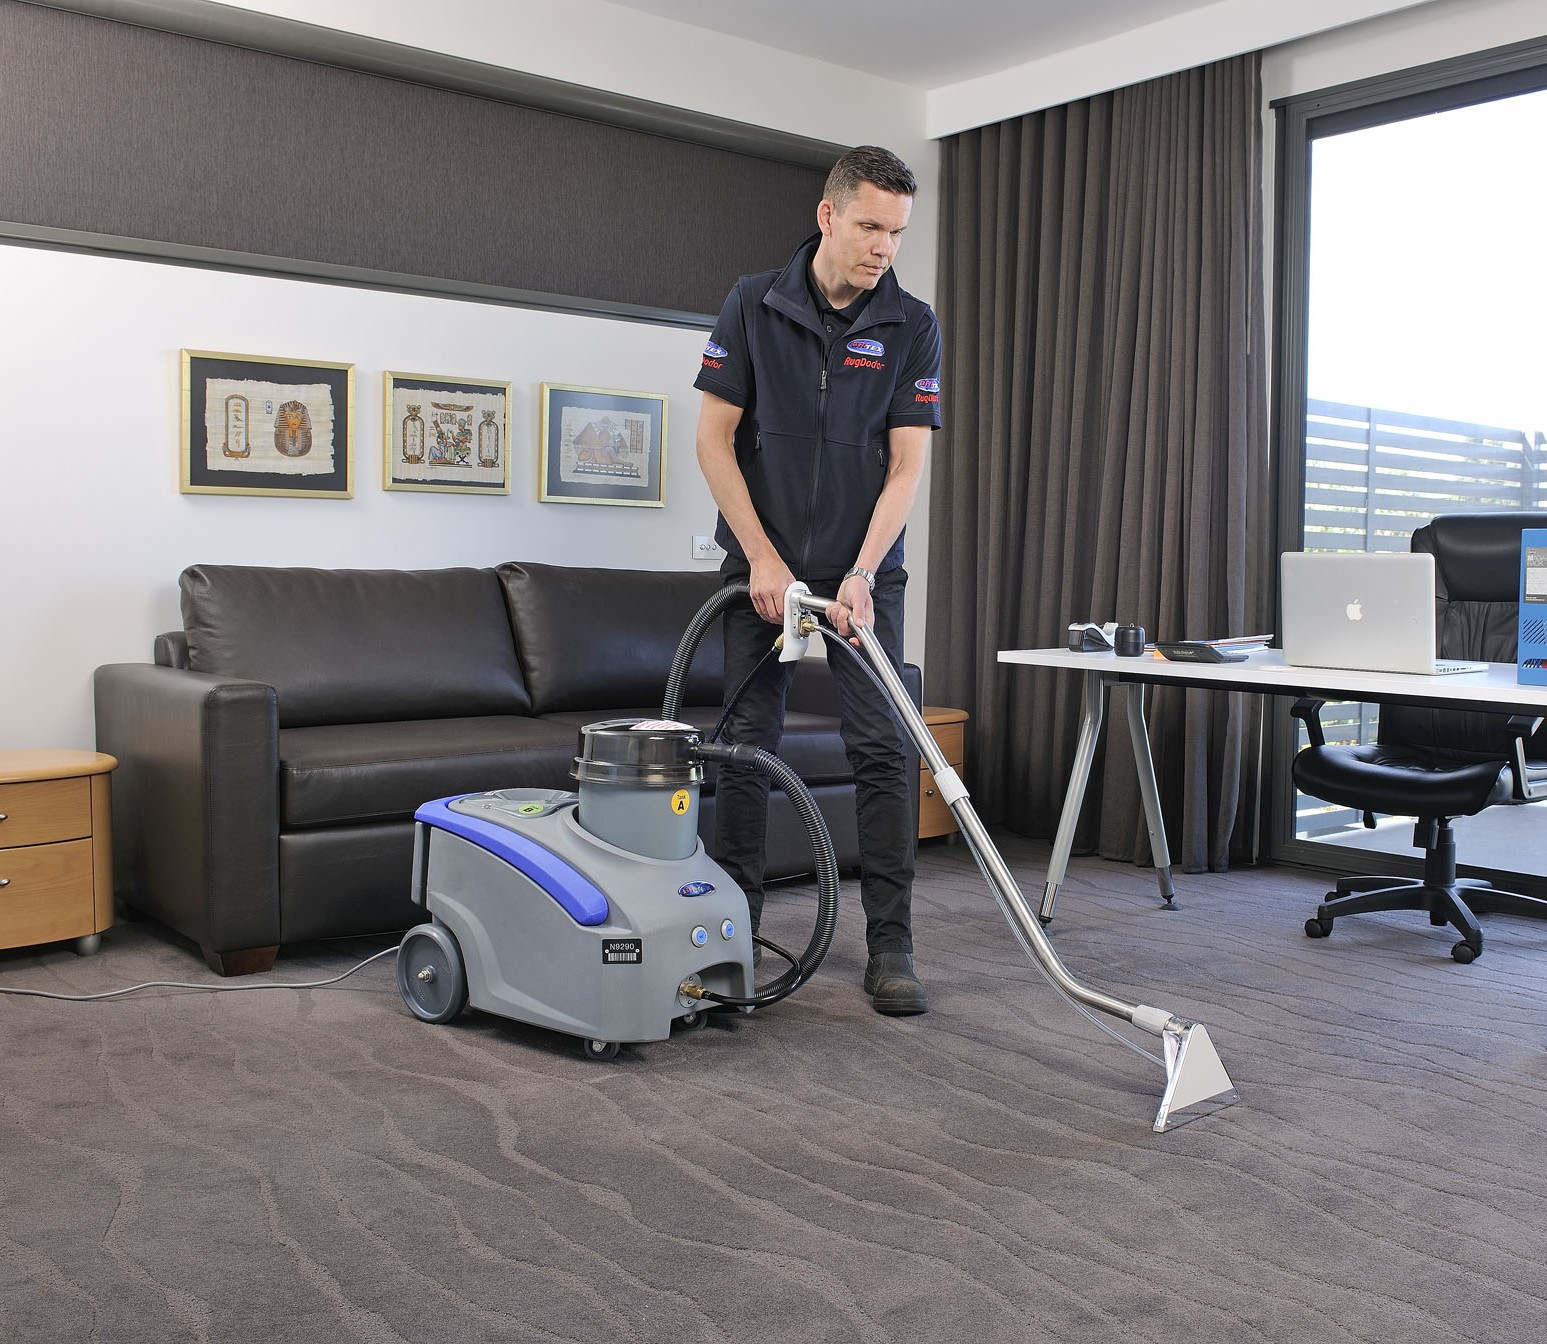 For cleaning carpets to a professional standard